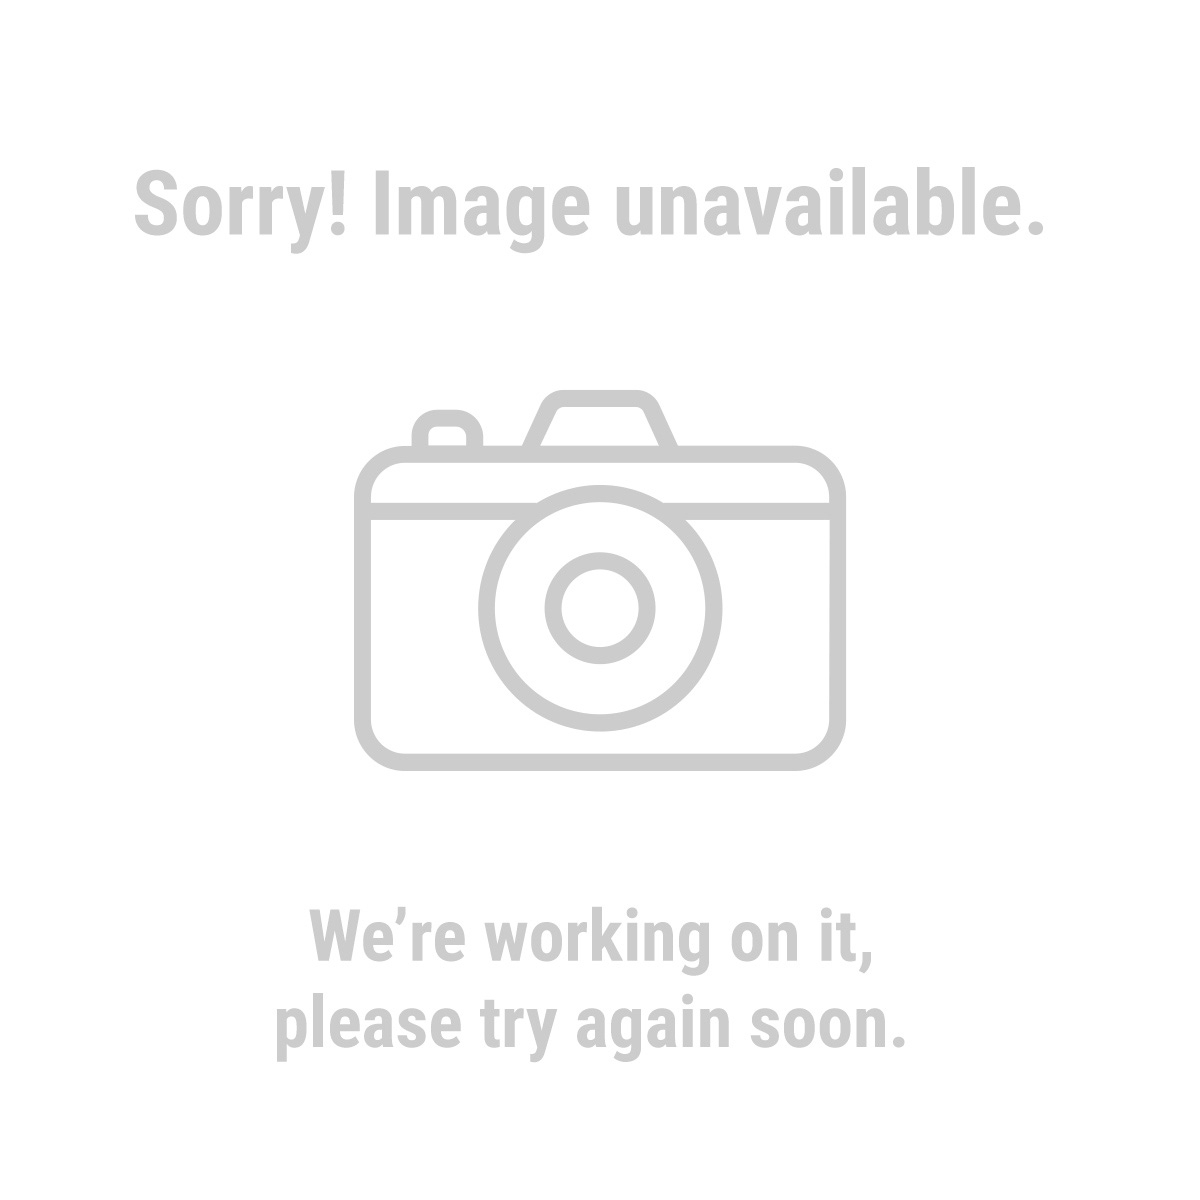 Golden Needles 30414 PVC Dot Gloves, 6 Pairs